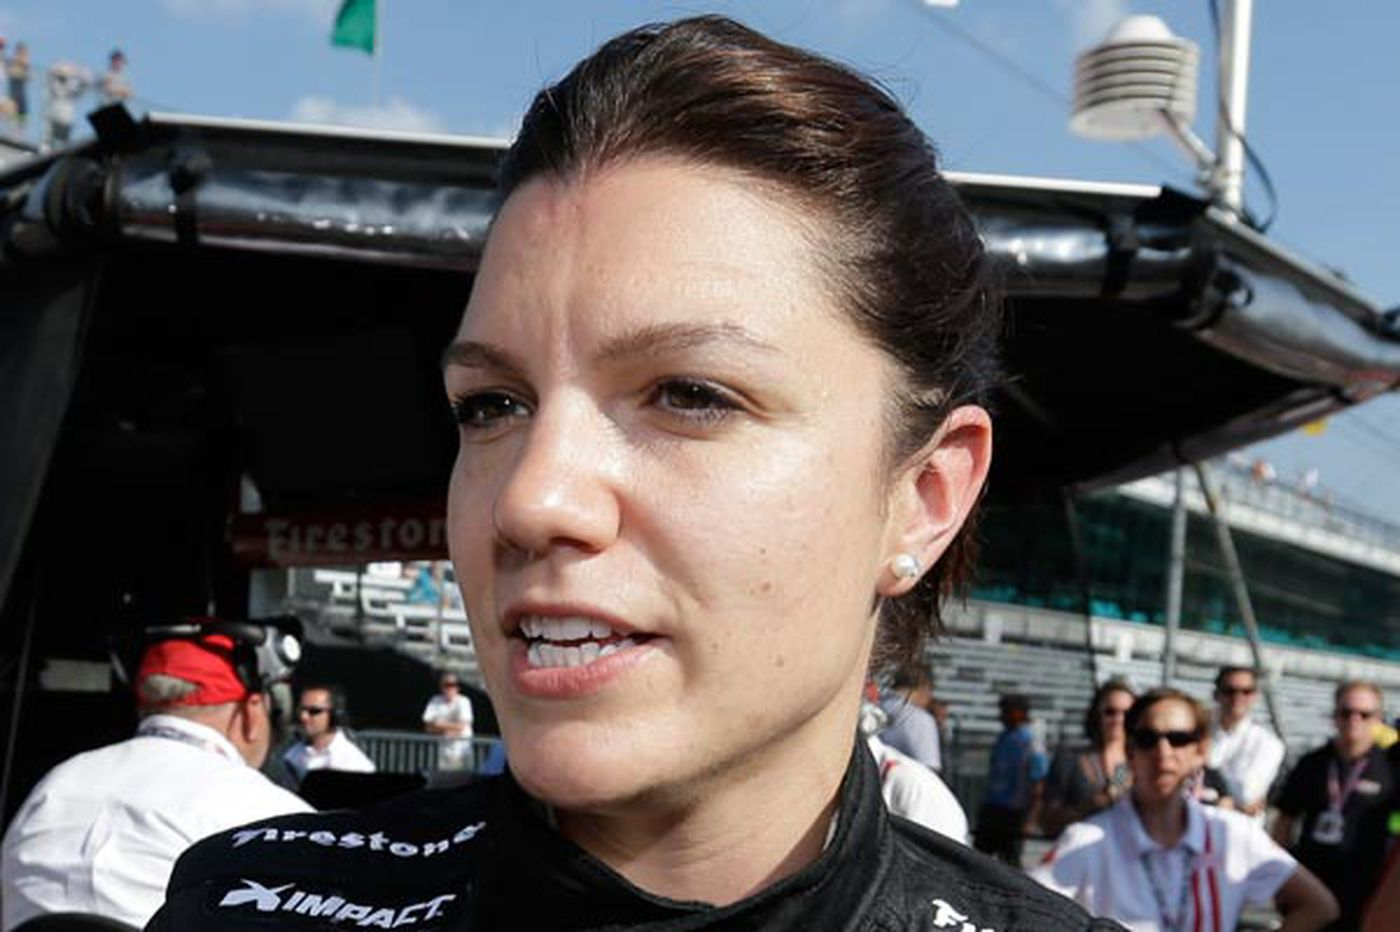 Four women to start in Indy 500, tying record